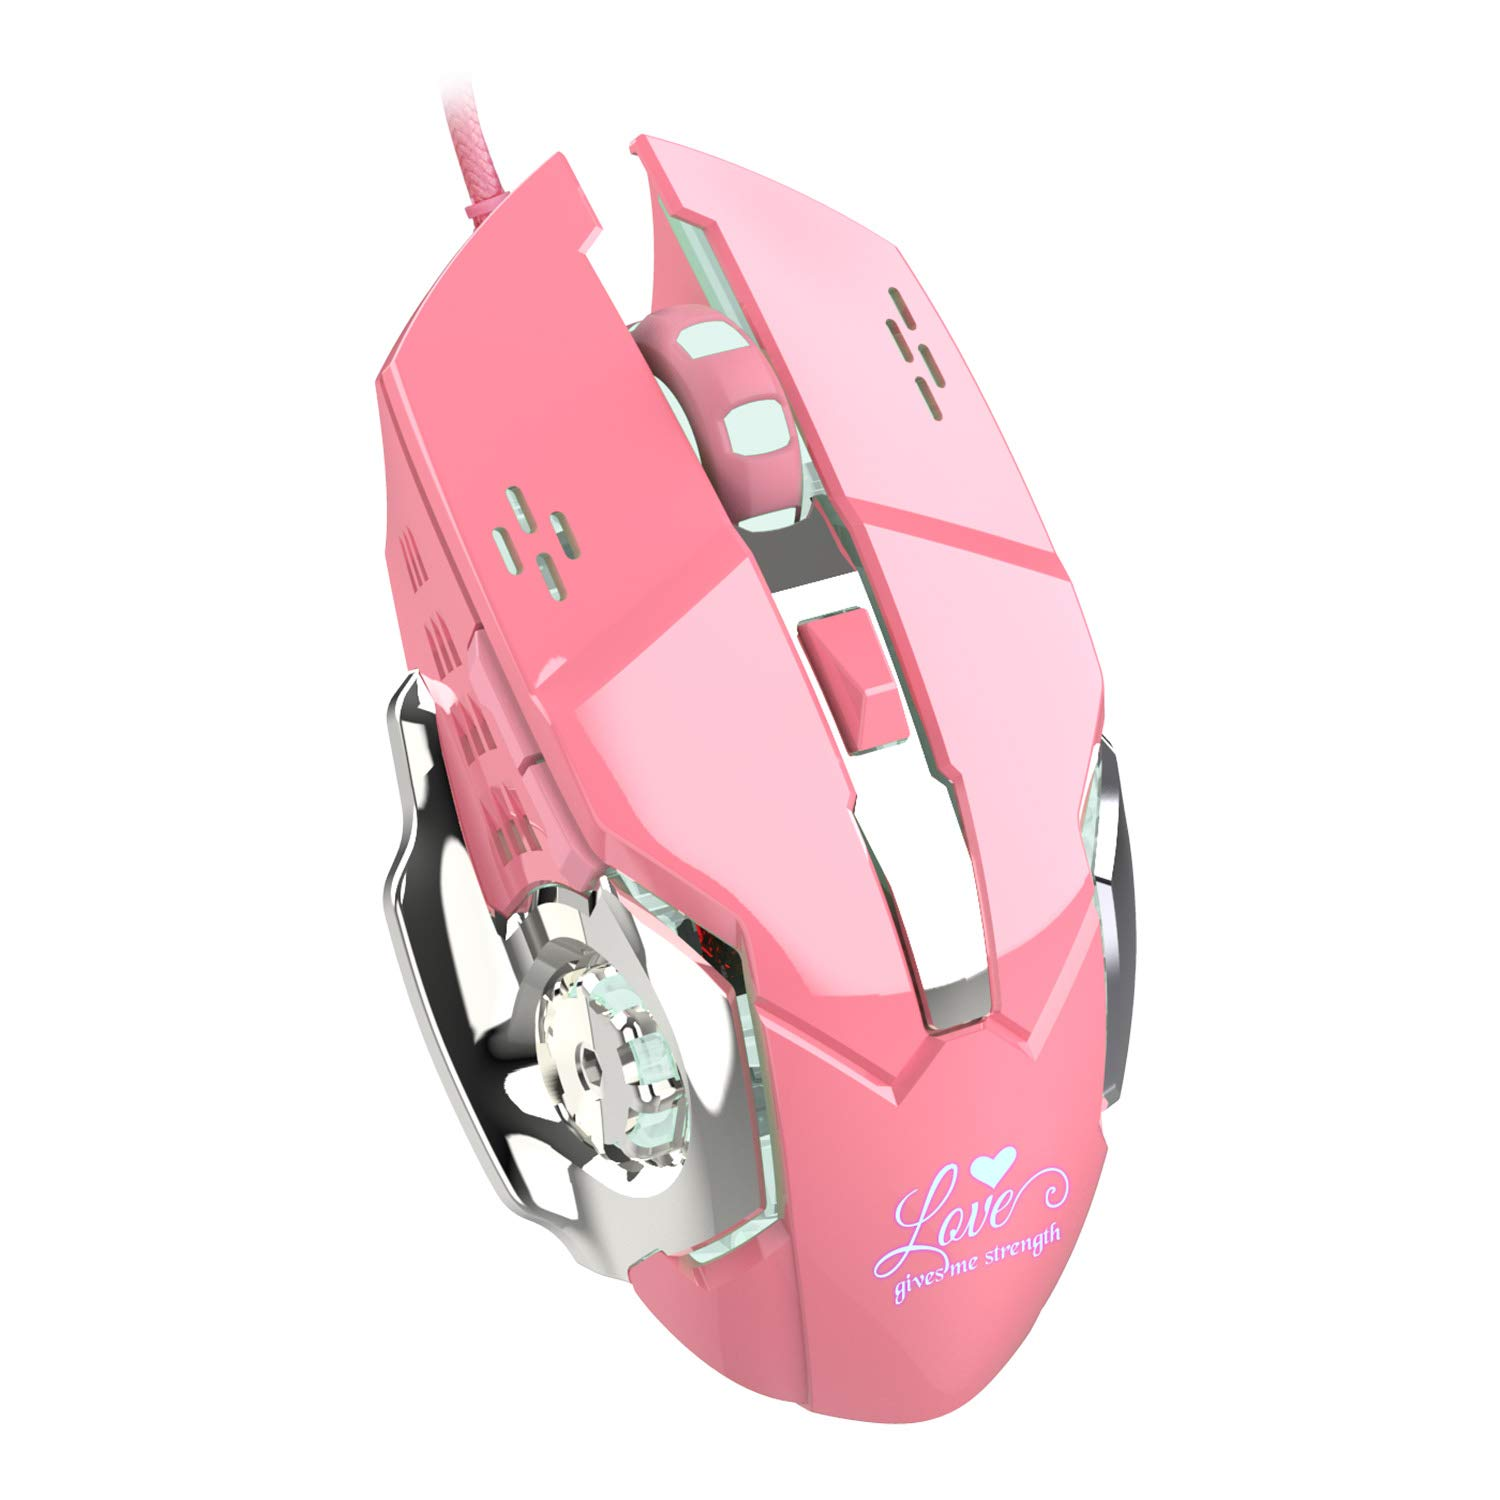 Gaming Mouse Wired, 6 Buttons, Chroma RGB Backlit, 3200 DPI Adjustable, Comfortable Grip Ergonomic Optical PC Computer USB Gaming Mice Pink